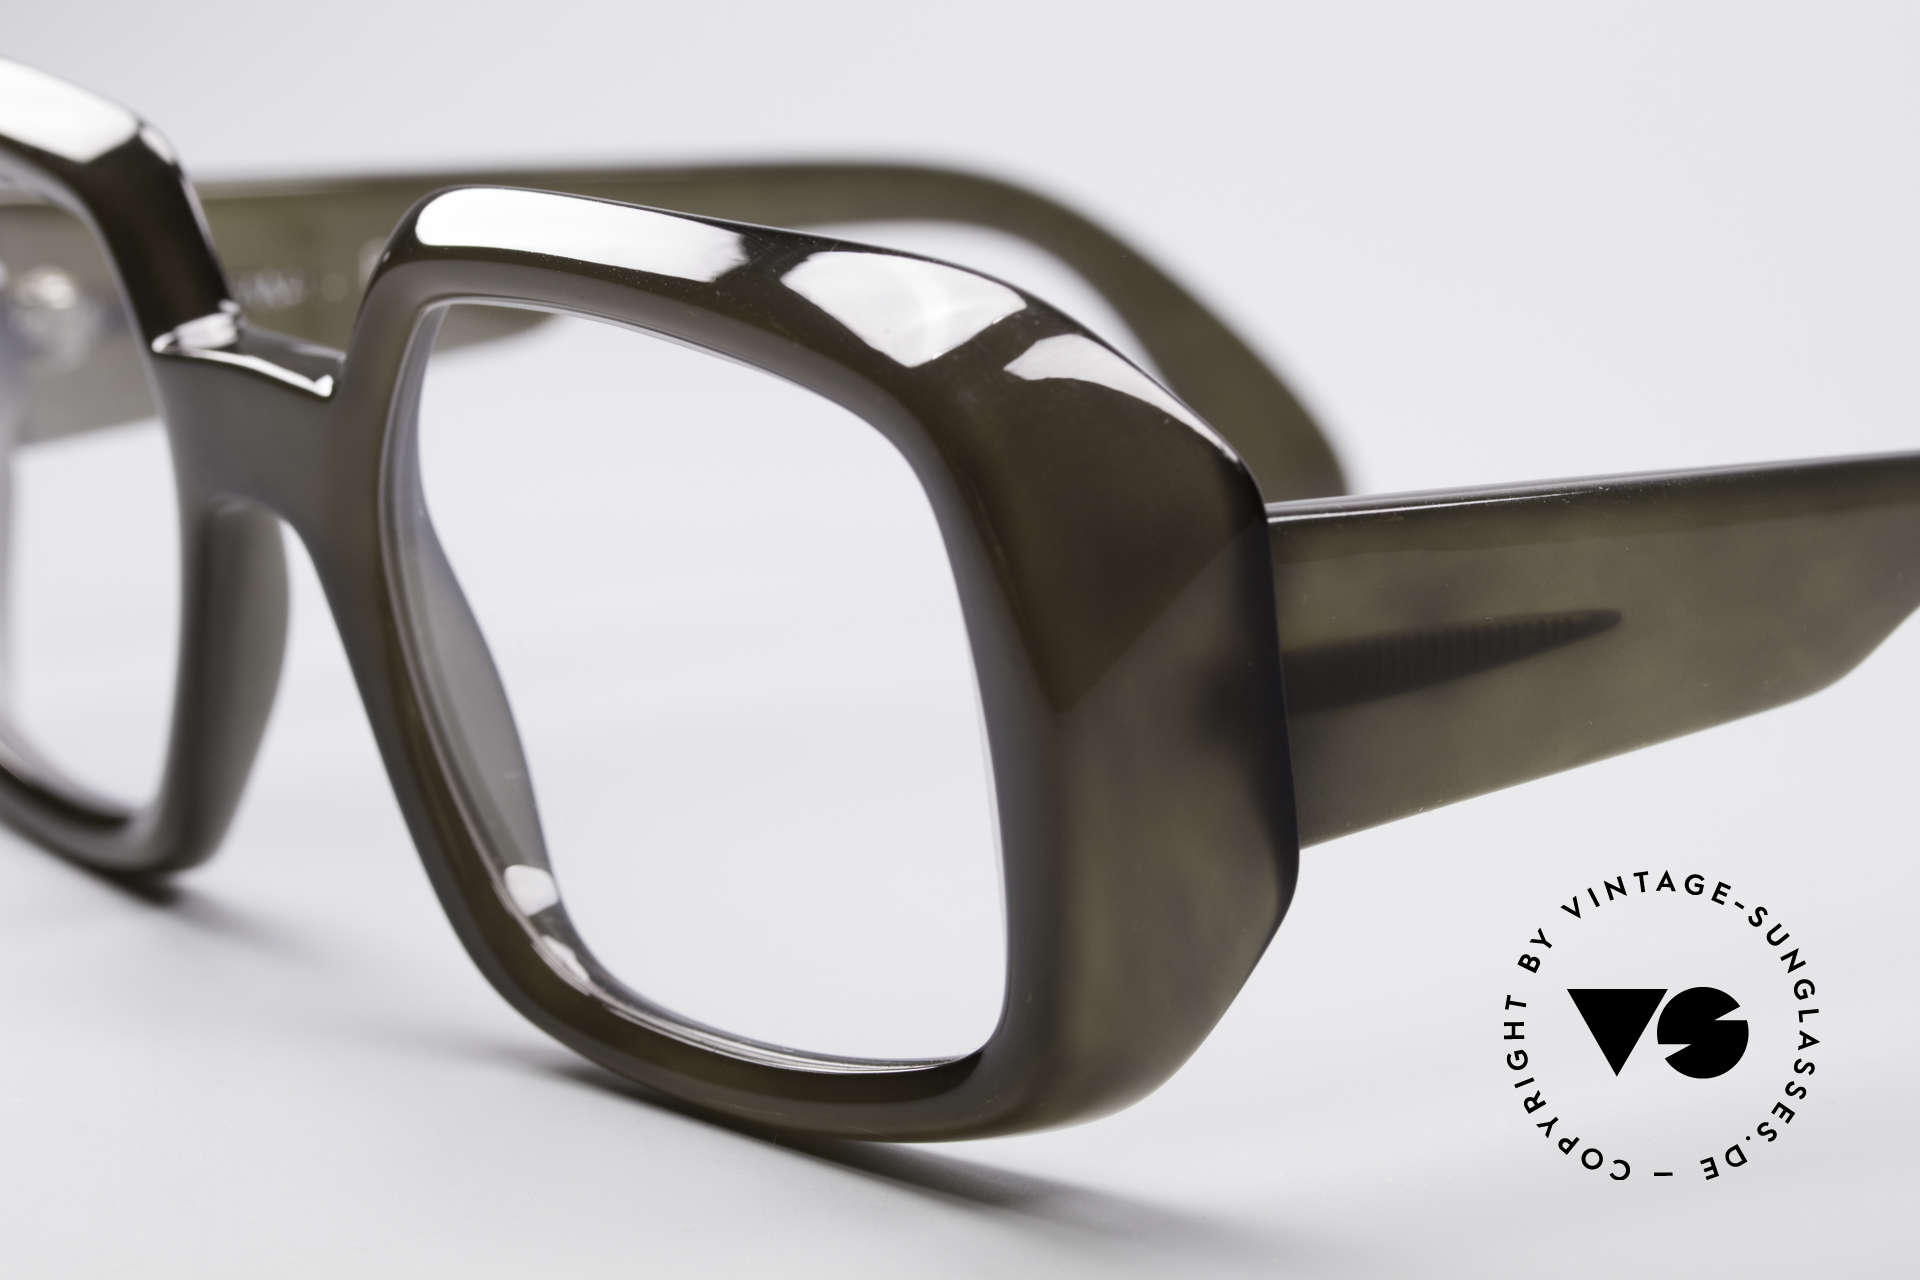 ViennaLine Royal 1601 Goliath Monster Specs, produced in the early 1970's; monolithic ... built to last, Made for Men